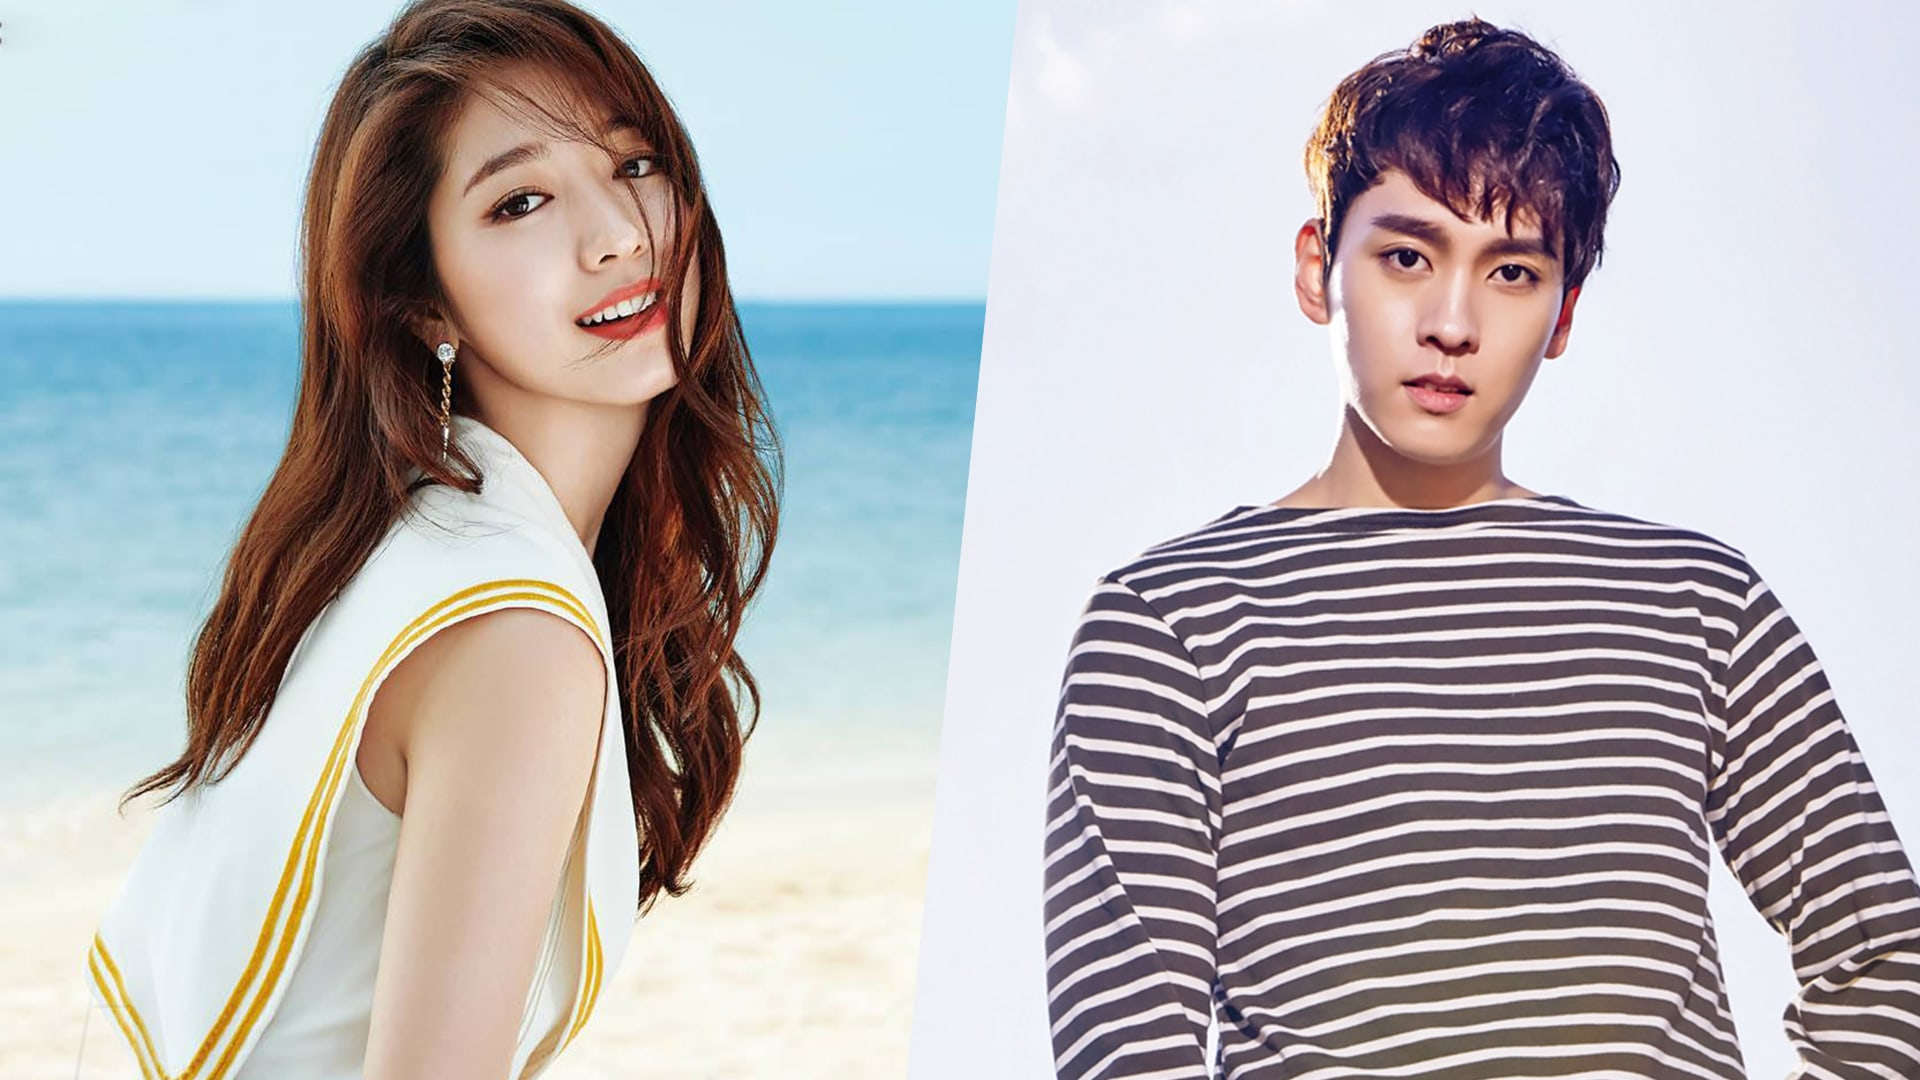 Park Shin Hye's Agency Respond To Dating Rumors Between The Actress And Choi Tae Joon